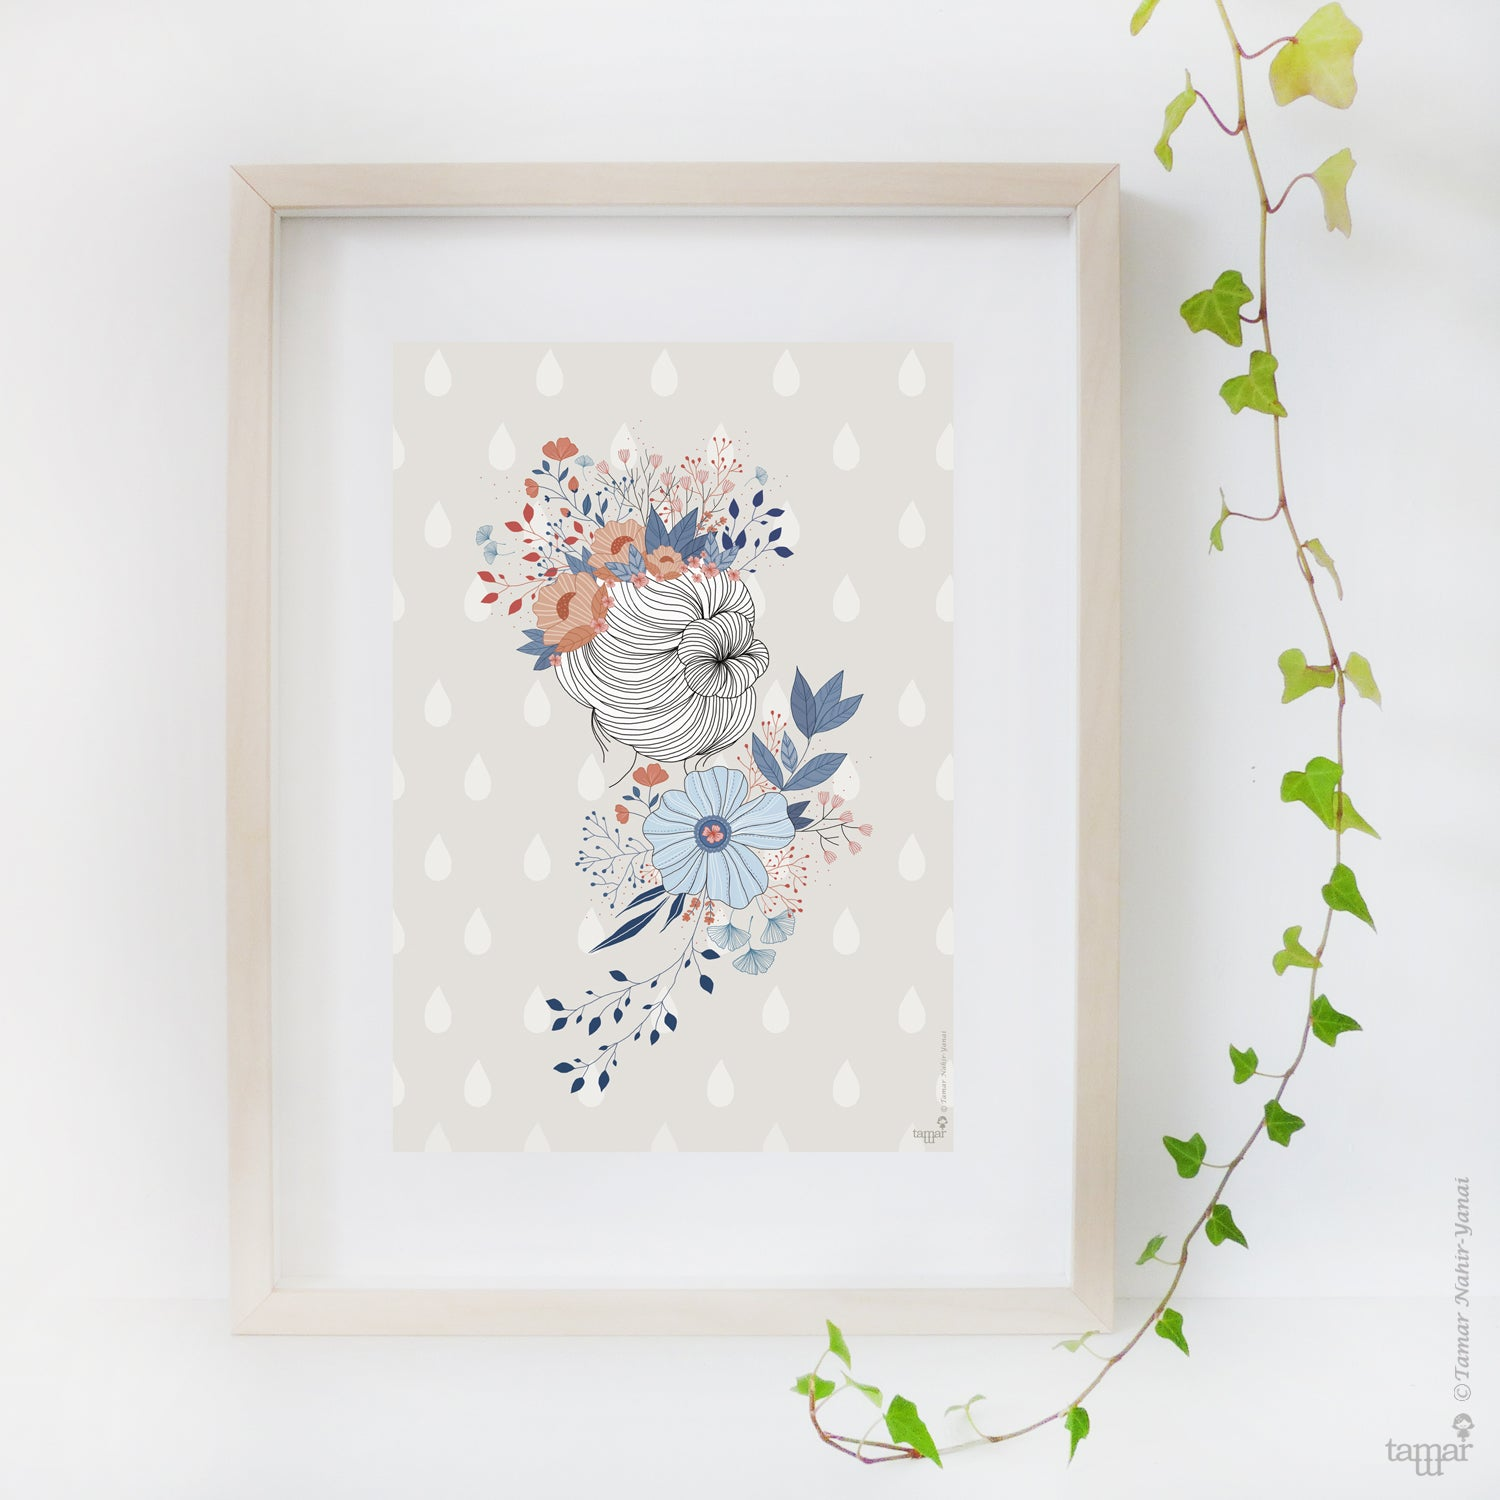 Flower Crown Lady Print Wall Art Tamar Nahir Yanai